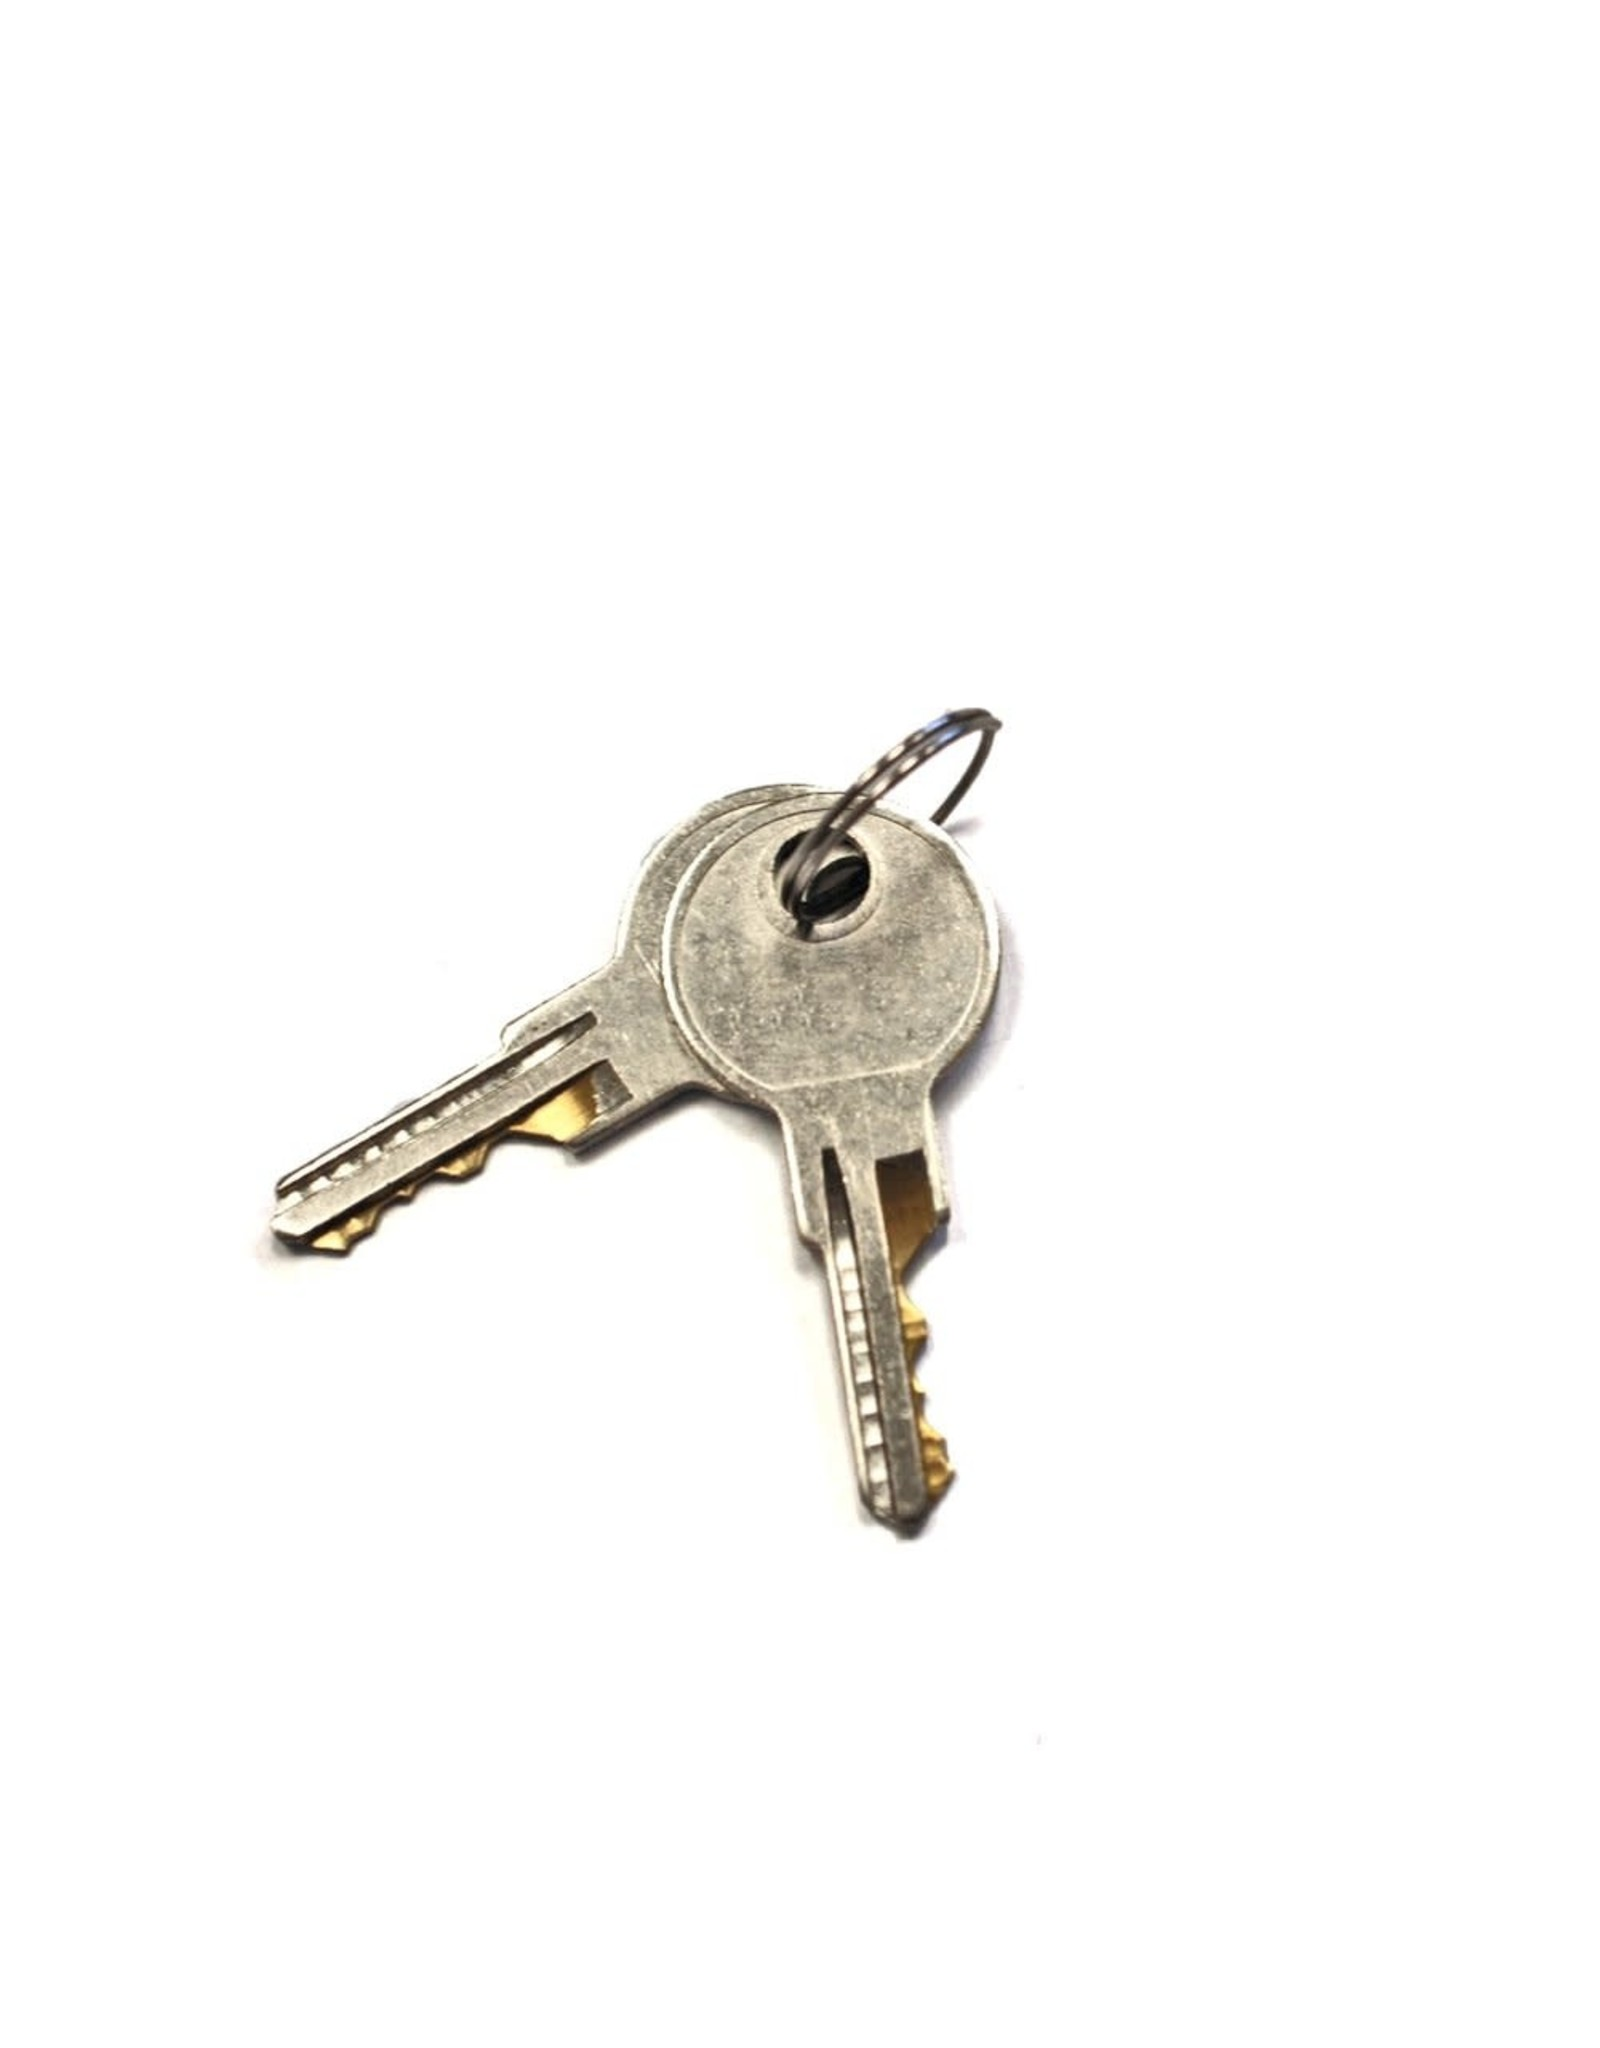 Pro1 Replacement Keys for Universal Thermostat Guard (T150)